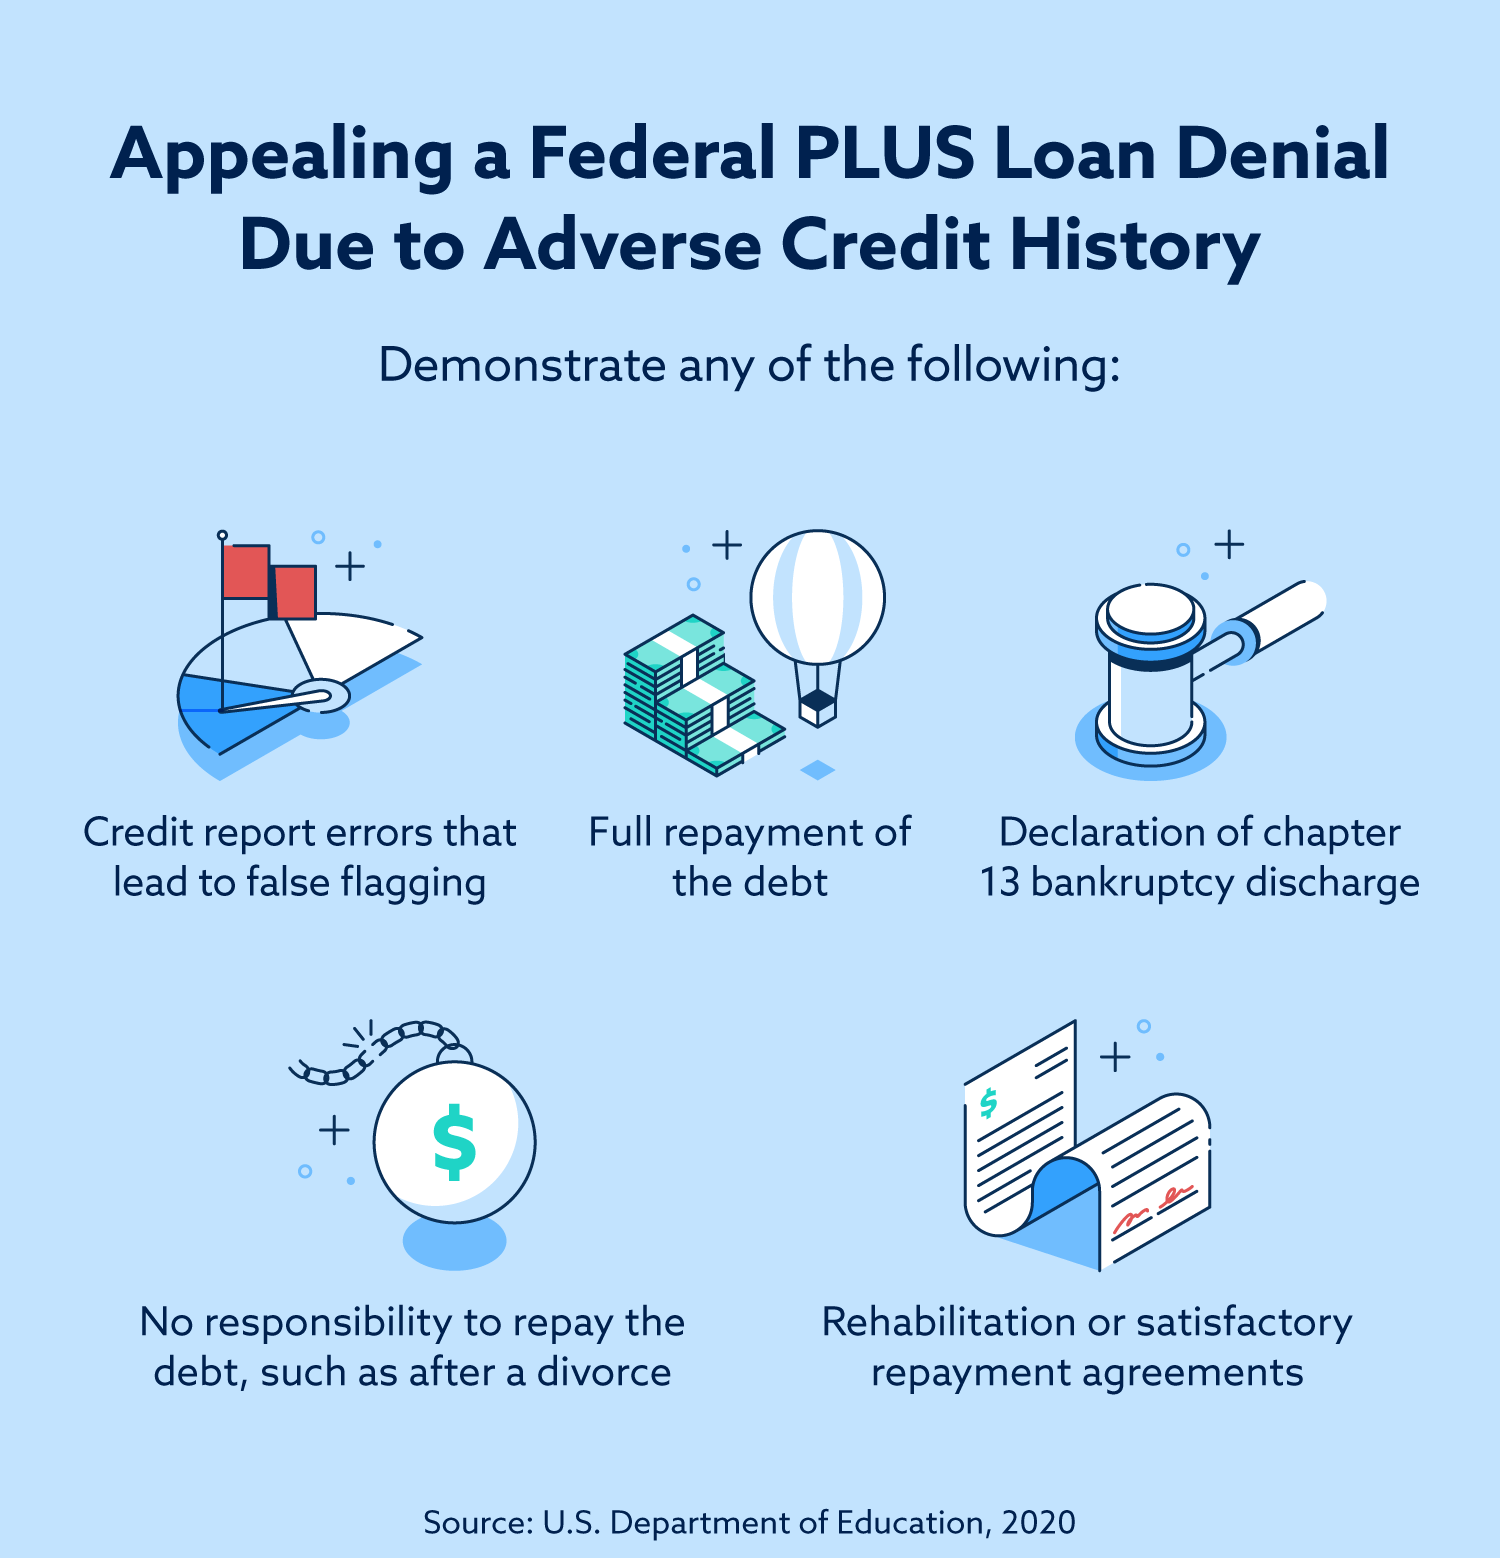 You can appeal a federal PLUS loan denial due to adverse credit history by demonstrating credit report errors that lead to false flagging, full repayment of your past debt, declaration of chapter 13 bankruptcy discharge, no responsibility to repay the debt (such as after a divorce), and rehabilitation or satisfactory repayment agreements.